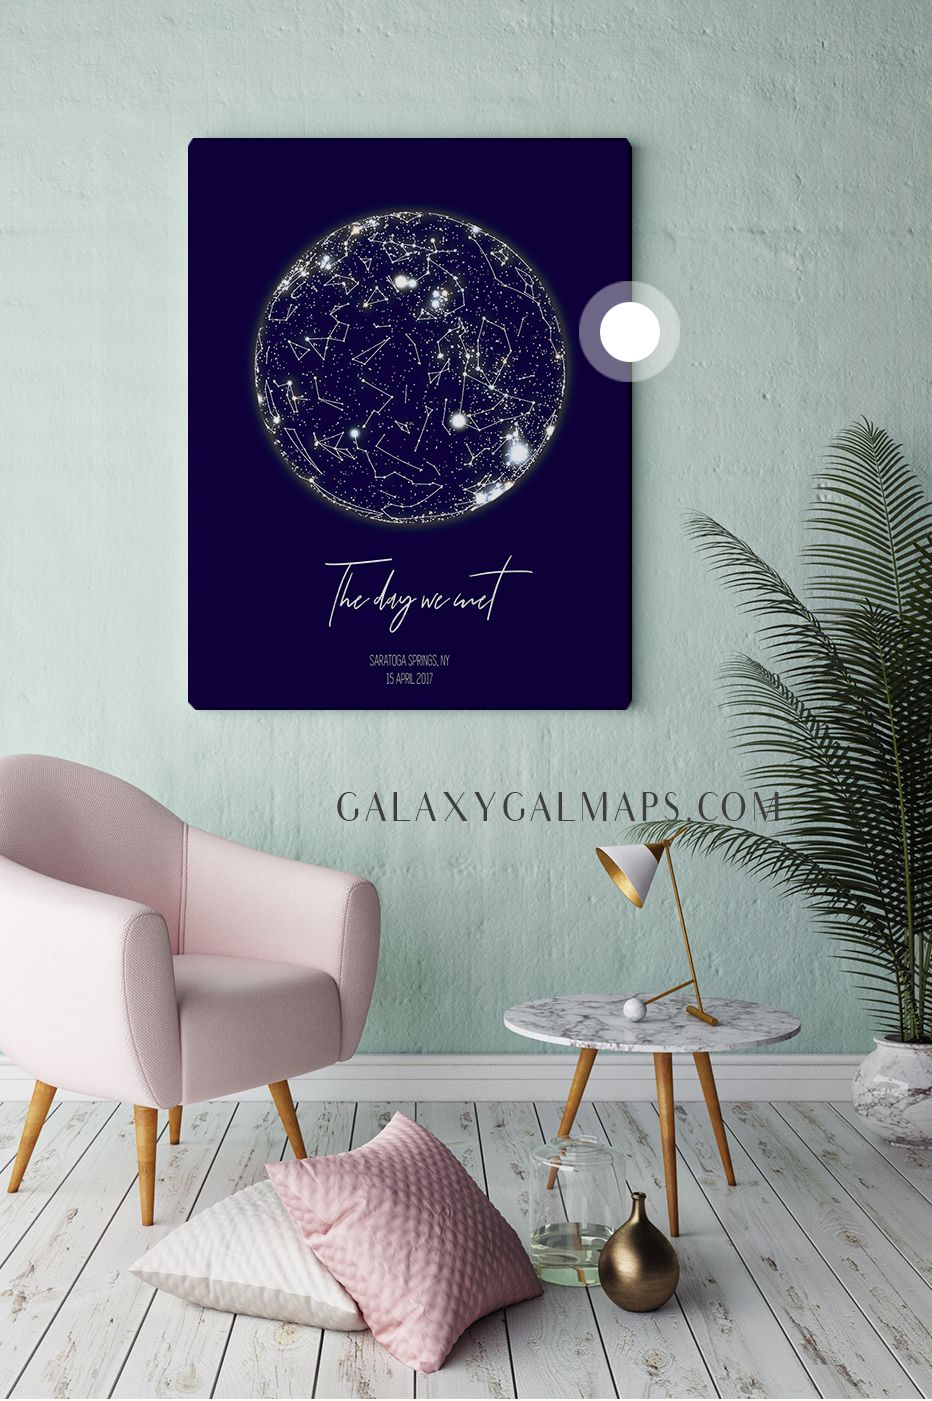 Personalized Star Map Star Map Wall Art My First Home New Home Housewarming Gift Personalized Map Re Star Map Friend Birthday Gifts Constellation Poster